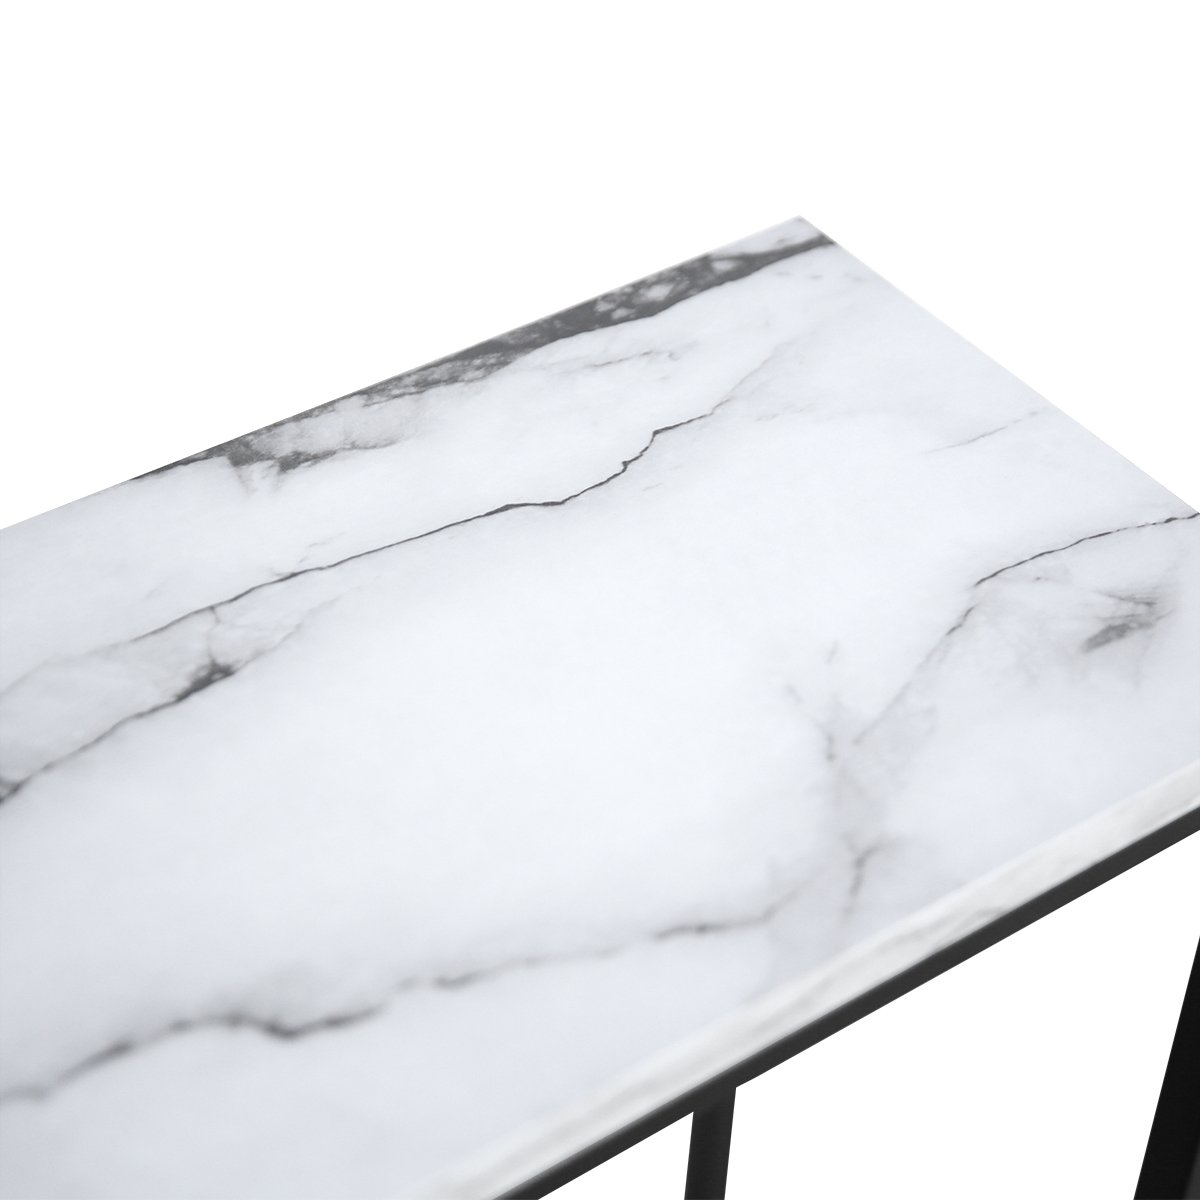 Tilly Lin Modern Accent Faux Marble Console Table, Black Metal Frame, for Hallway Entryway Living room, Entrance Hall Furniture, Carrara